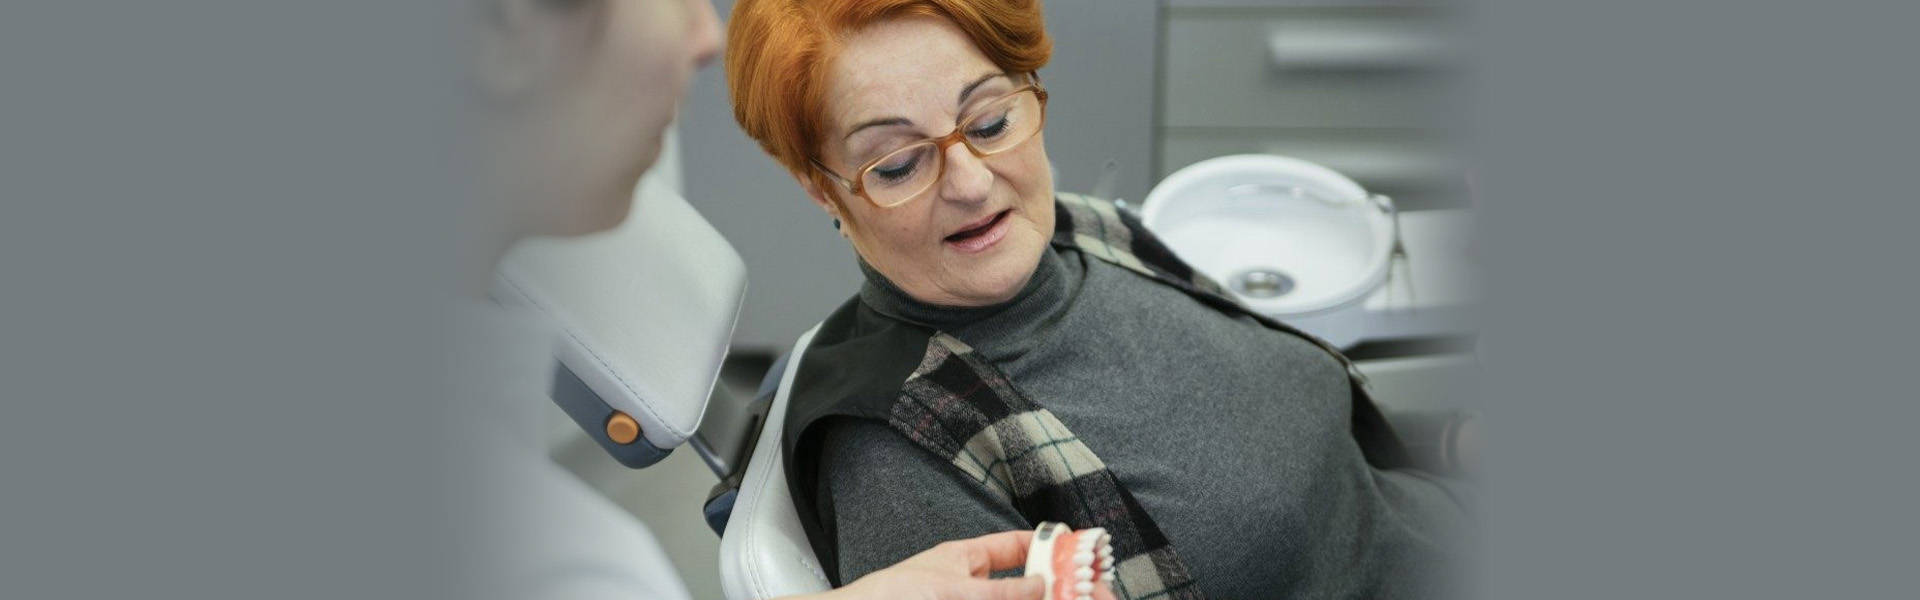 Few Dentists offer quick And Quality Denture Repairs